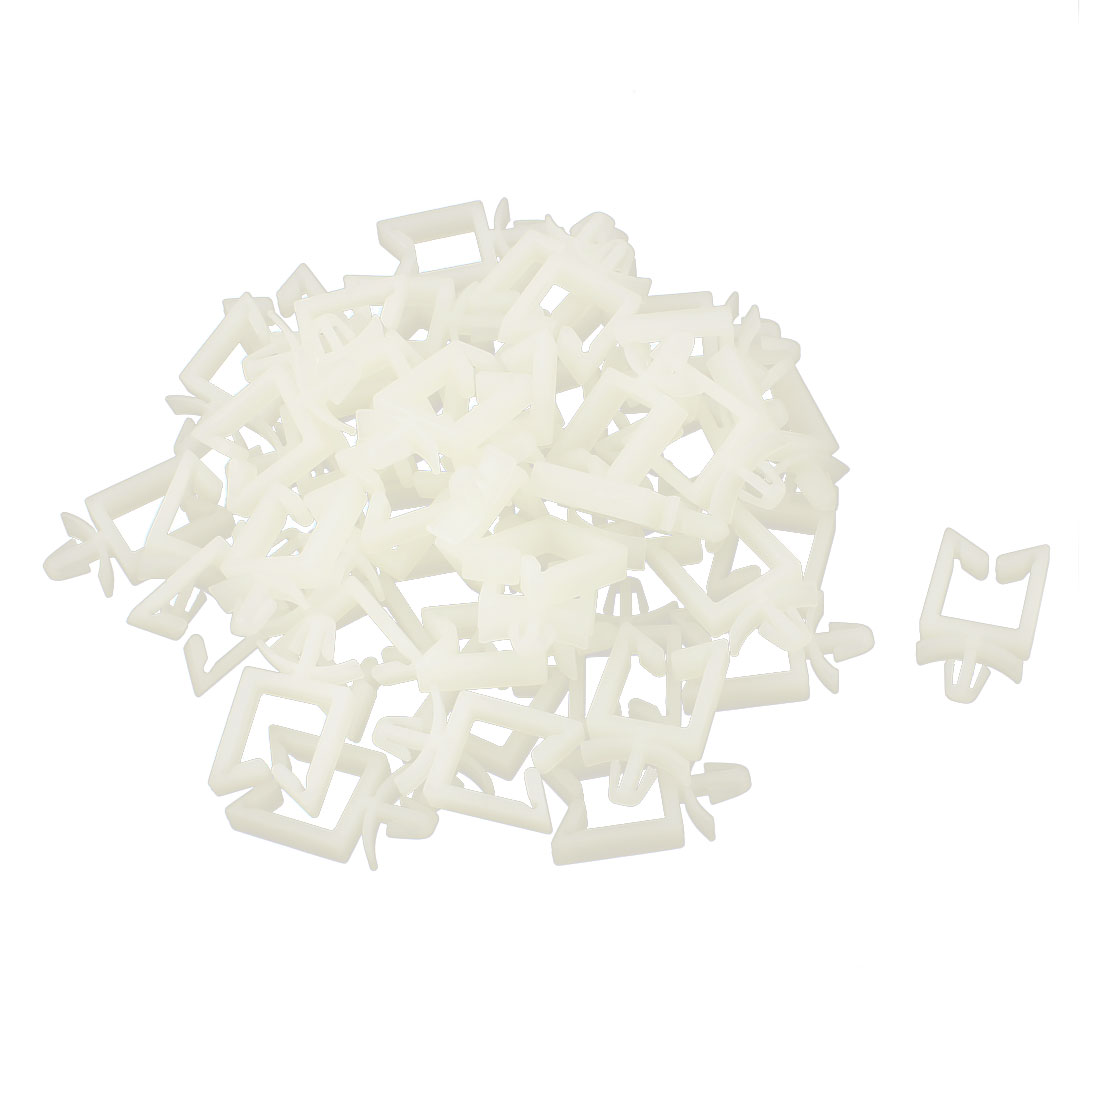 50Pcs Plastic 11mm Push in Cable Clamp Holder Fastener White